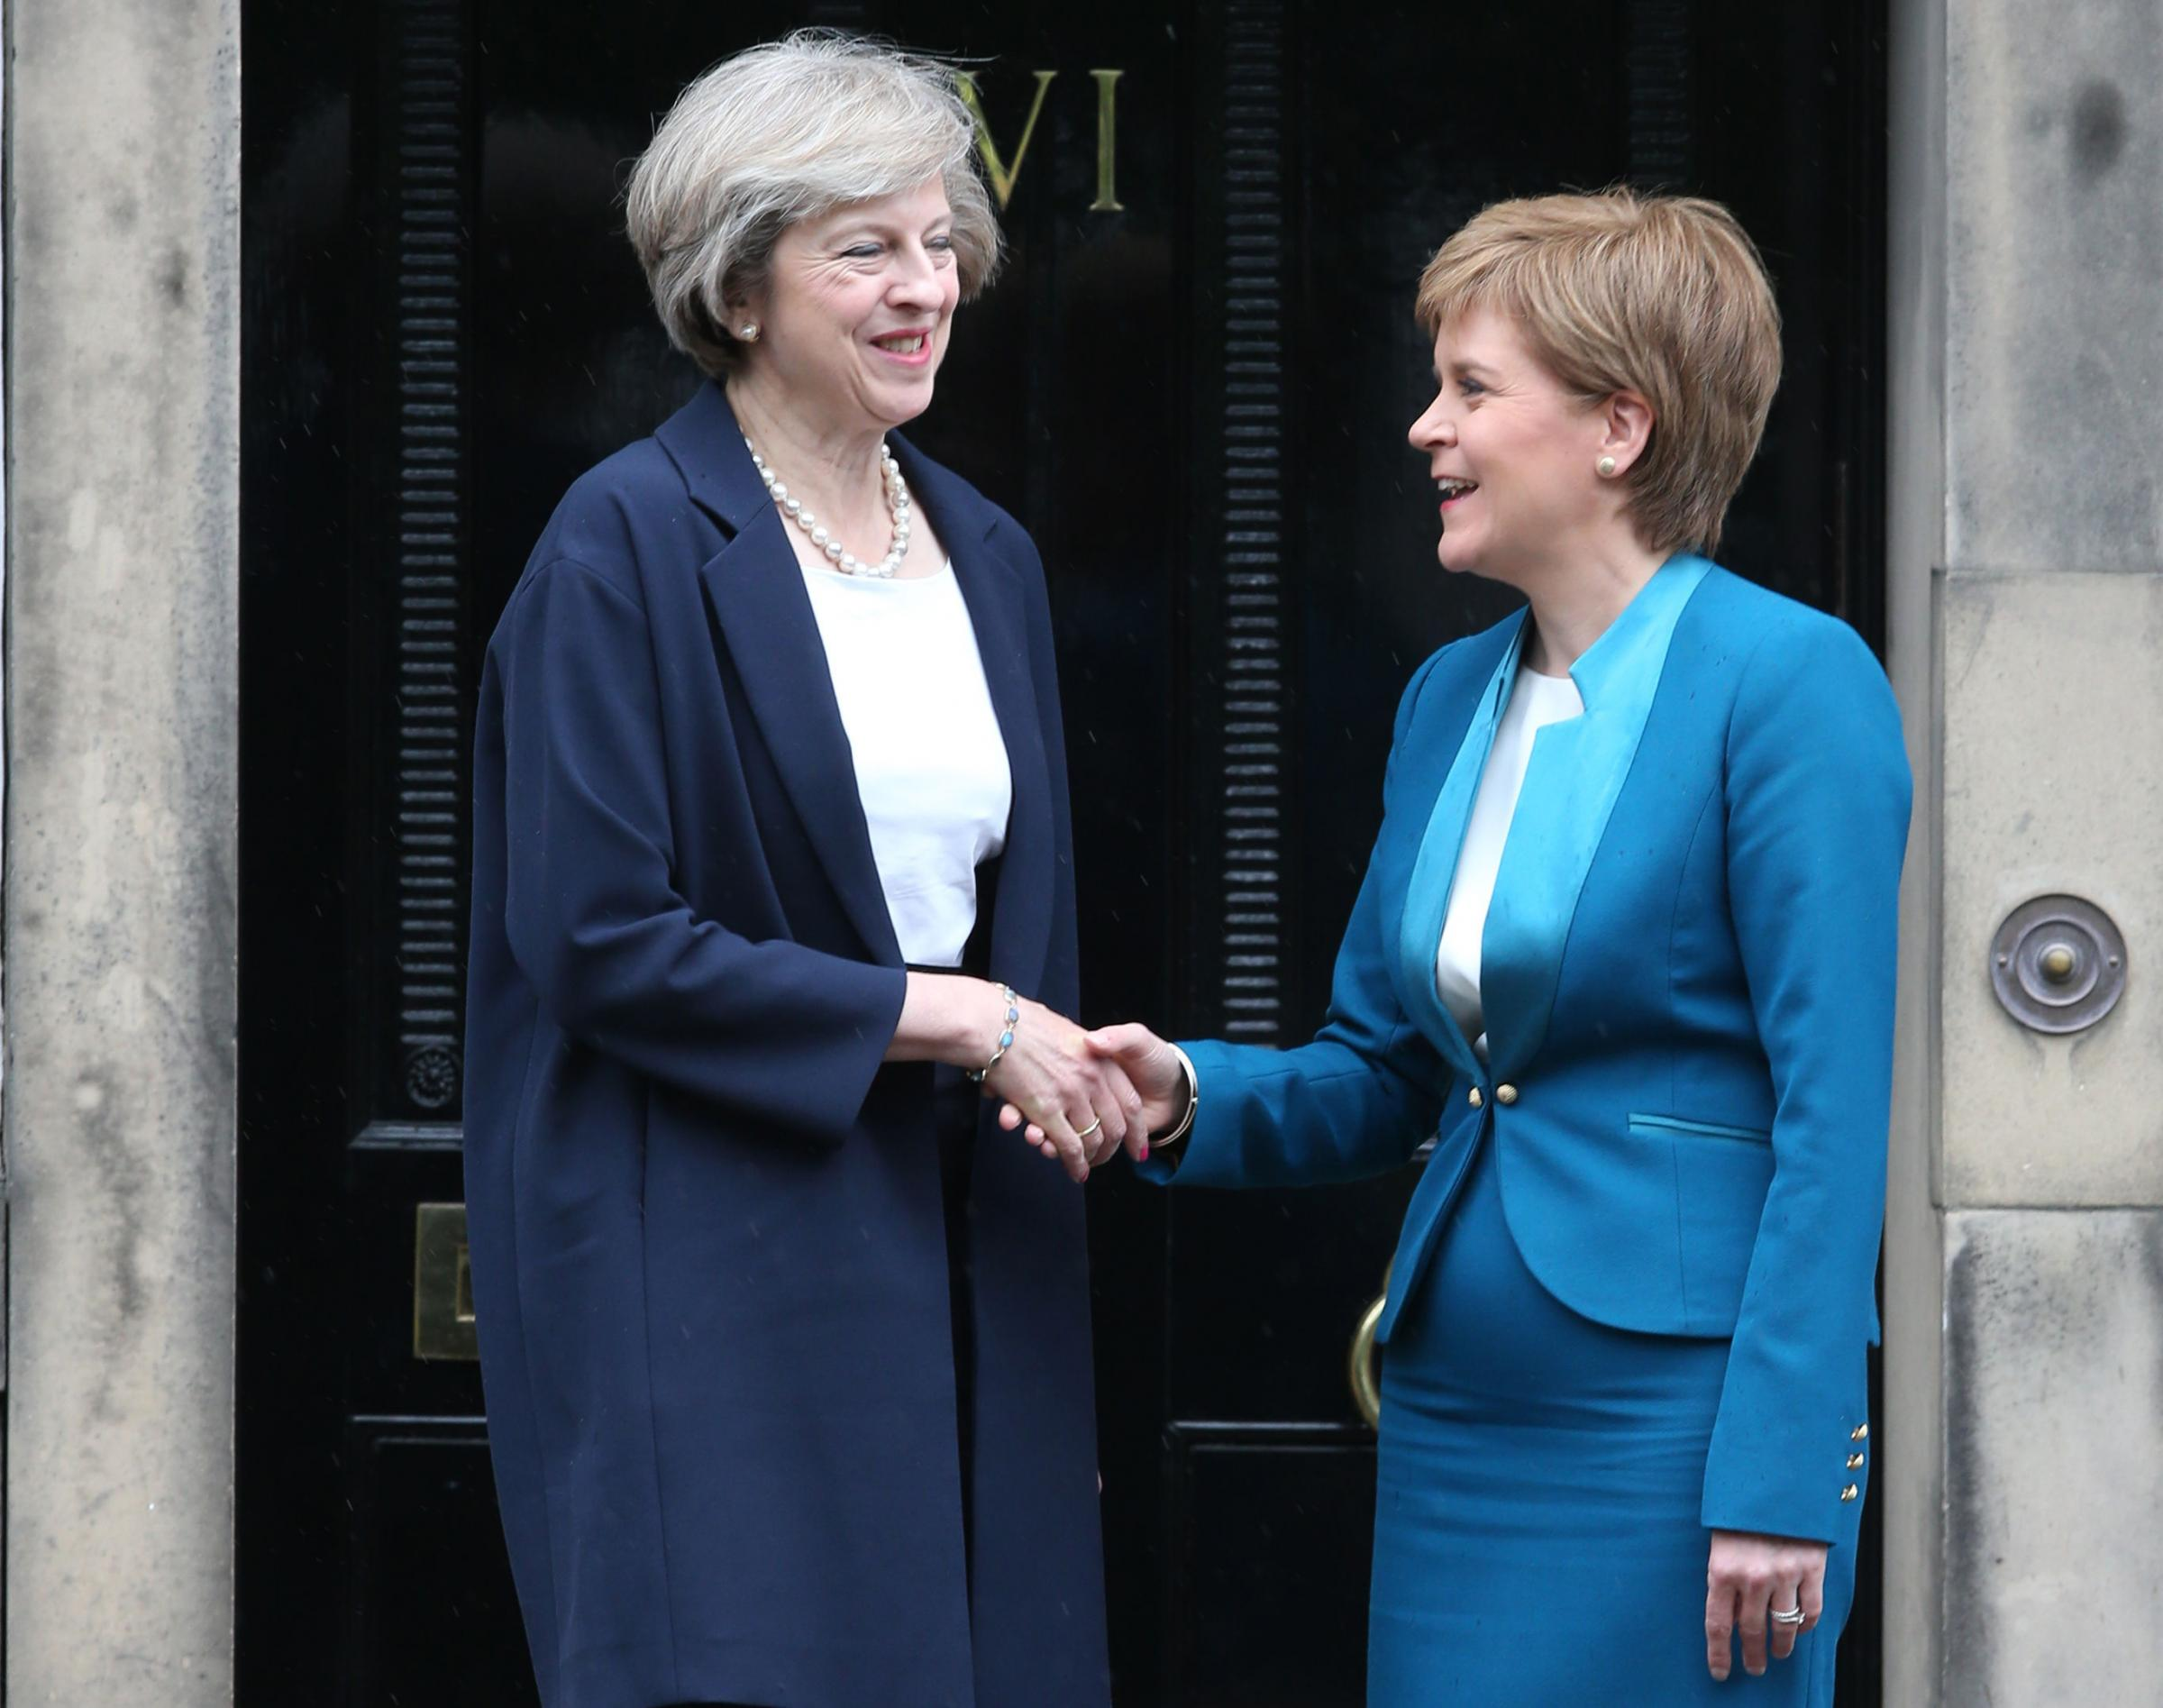 SNP hopes for last-minute deal with May on Brexit Bill